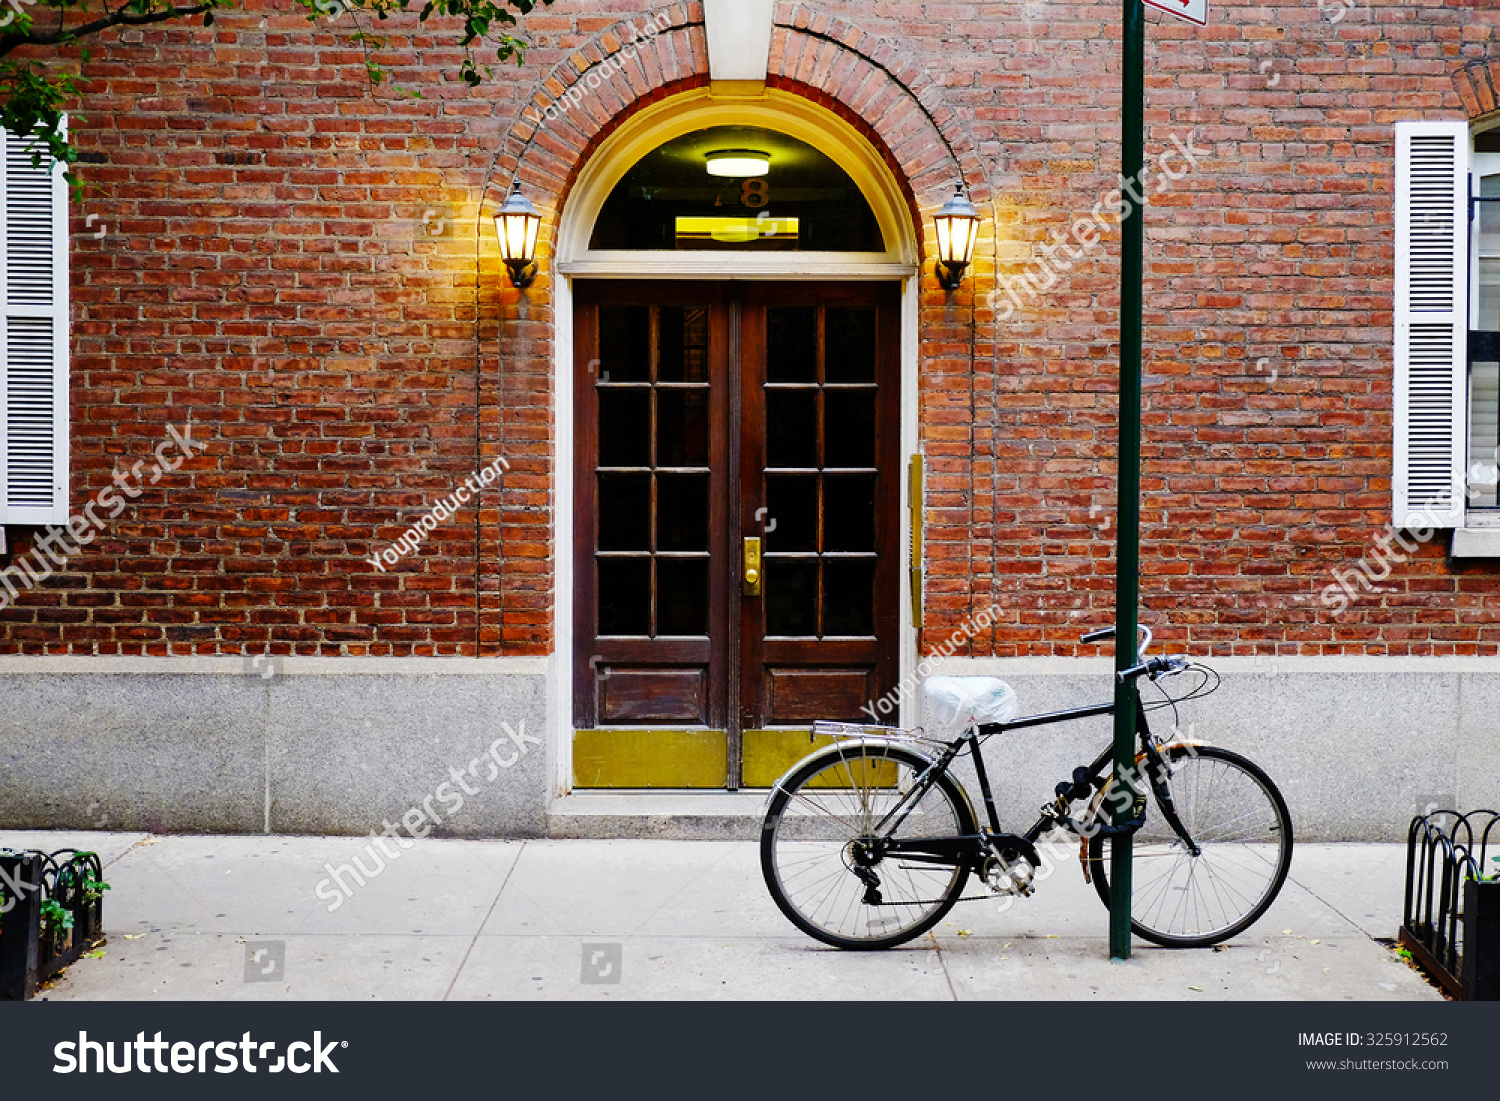 beautiful building entrance door and bicycle manhattan new york classic apartment building in. Black Bedroom Furniture Sets. Home Design Ideas